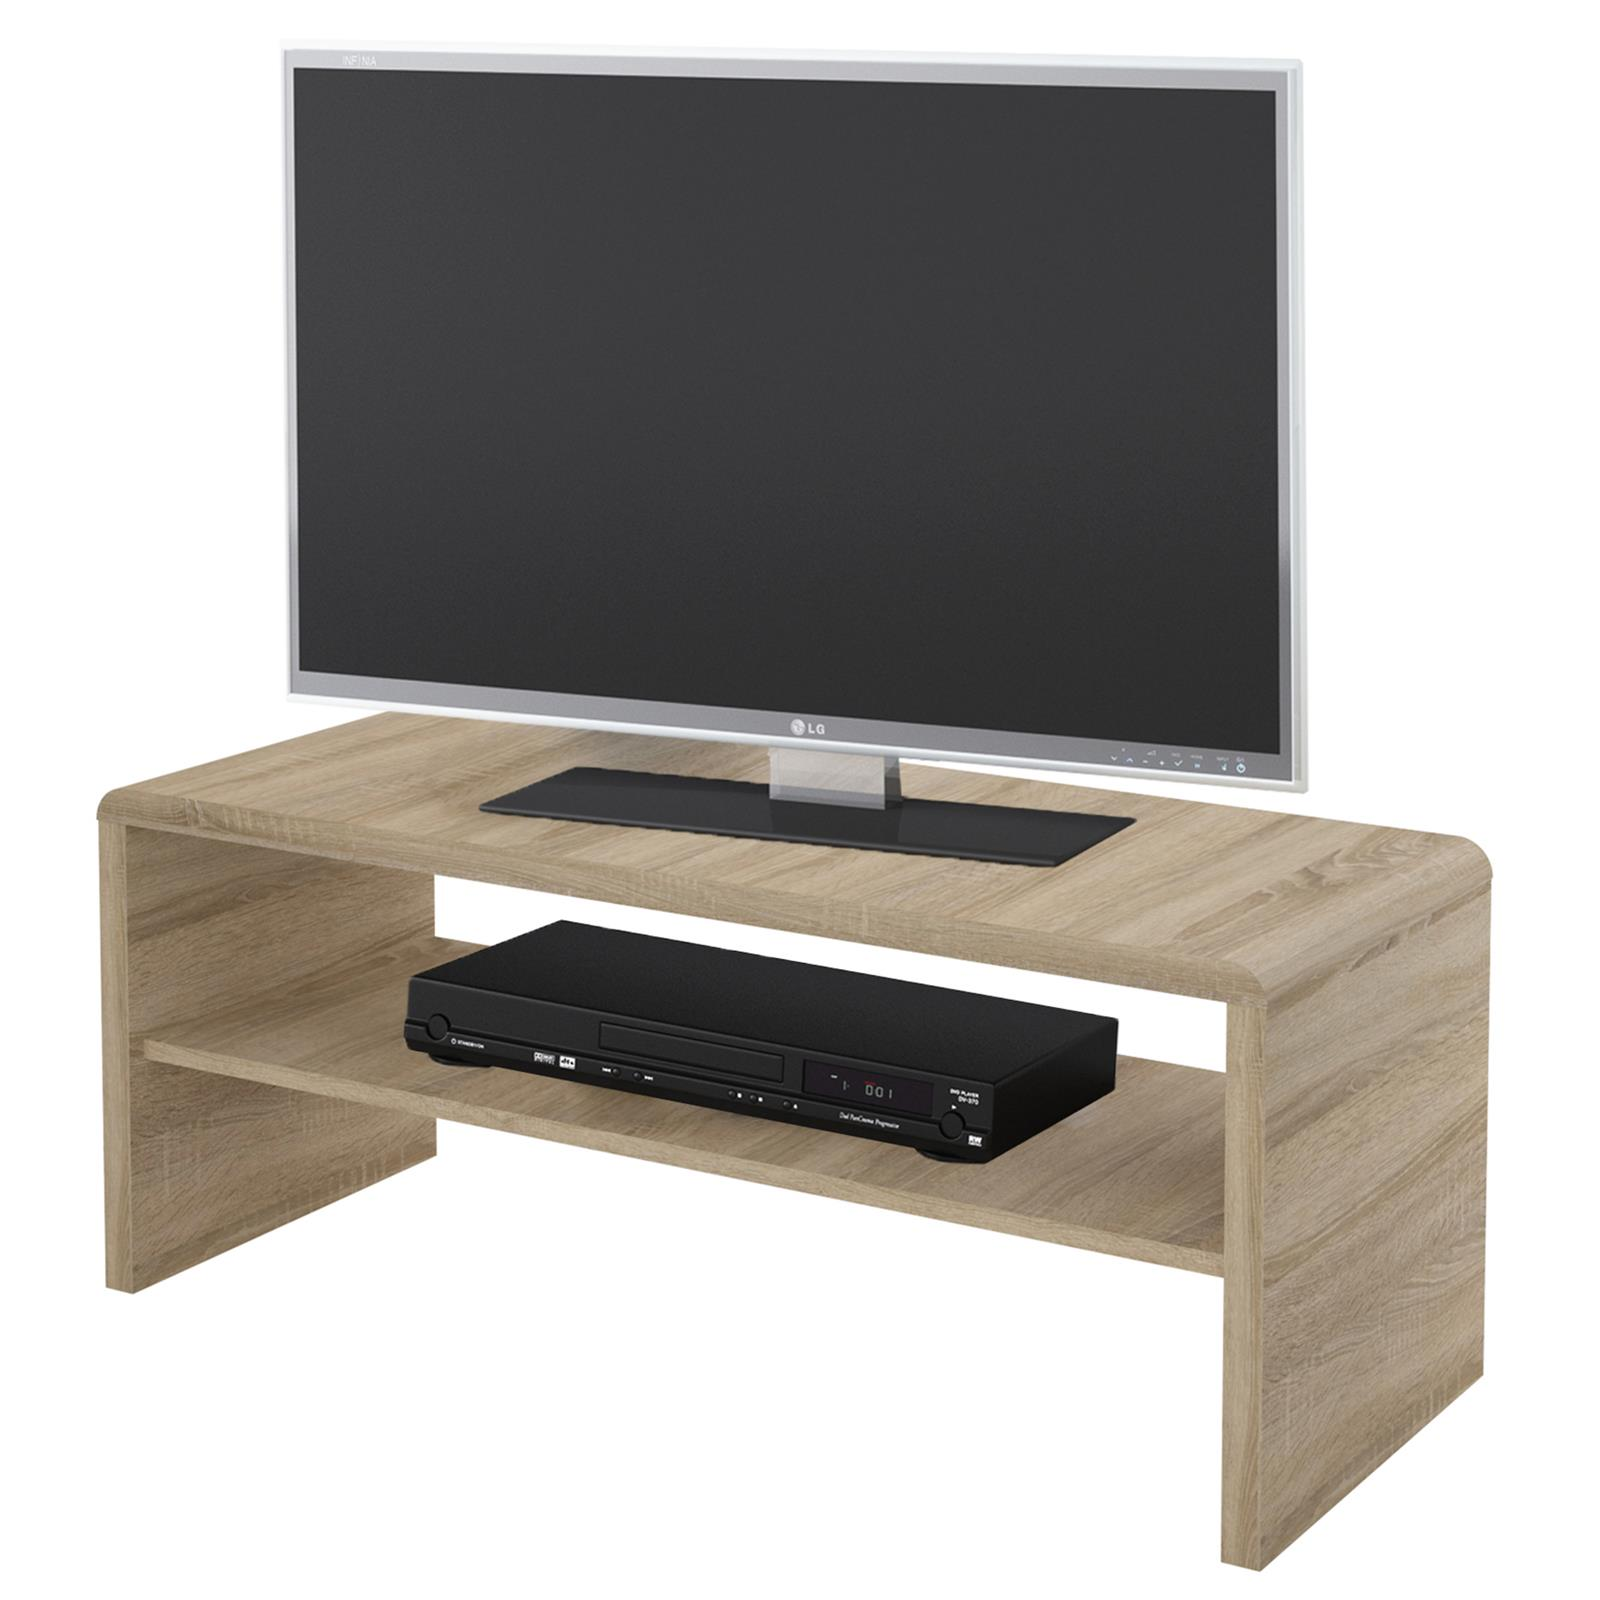 tv lowboard oder couchtisch in eiche sonoma wei 100 cm breit fernseh tisch ebay. Black Bedroom Furniture Sets. Home Design Ideas